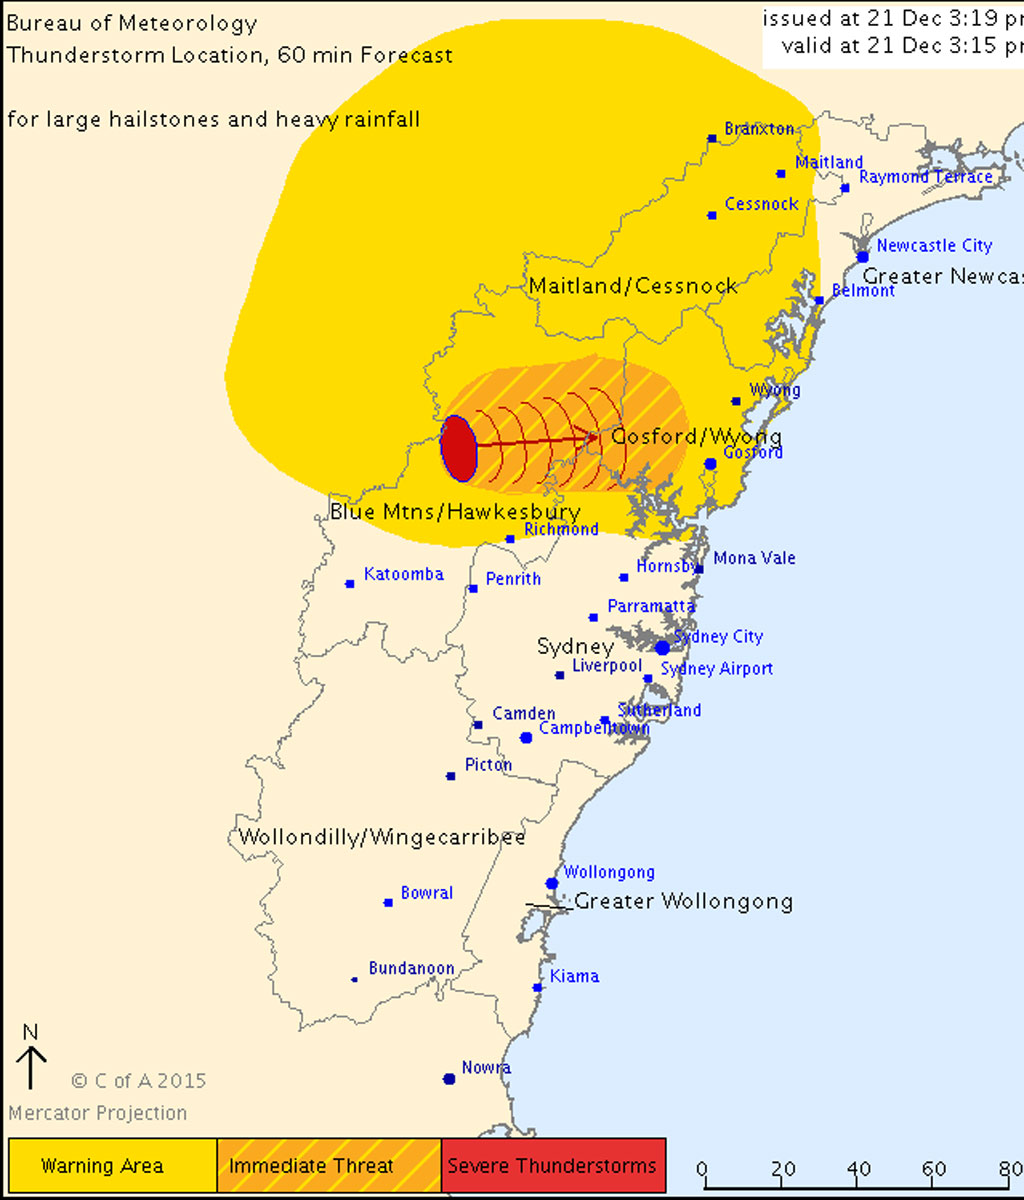 Severe thunderstorm warning for parts of Sydney, NSW's Hunter and Central Tablelands